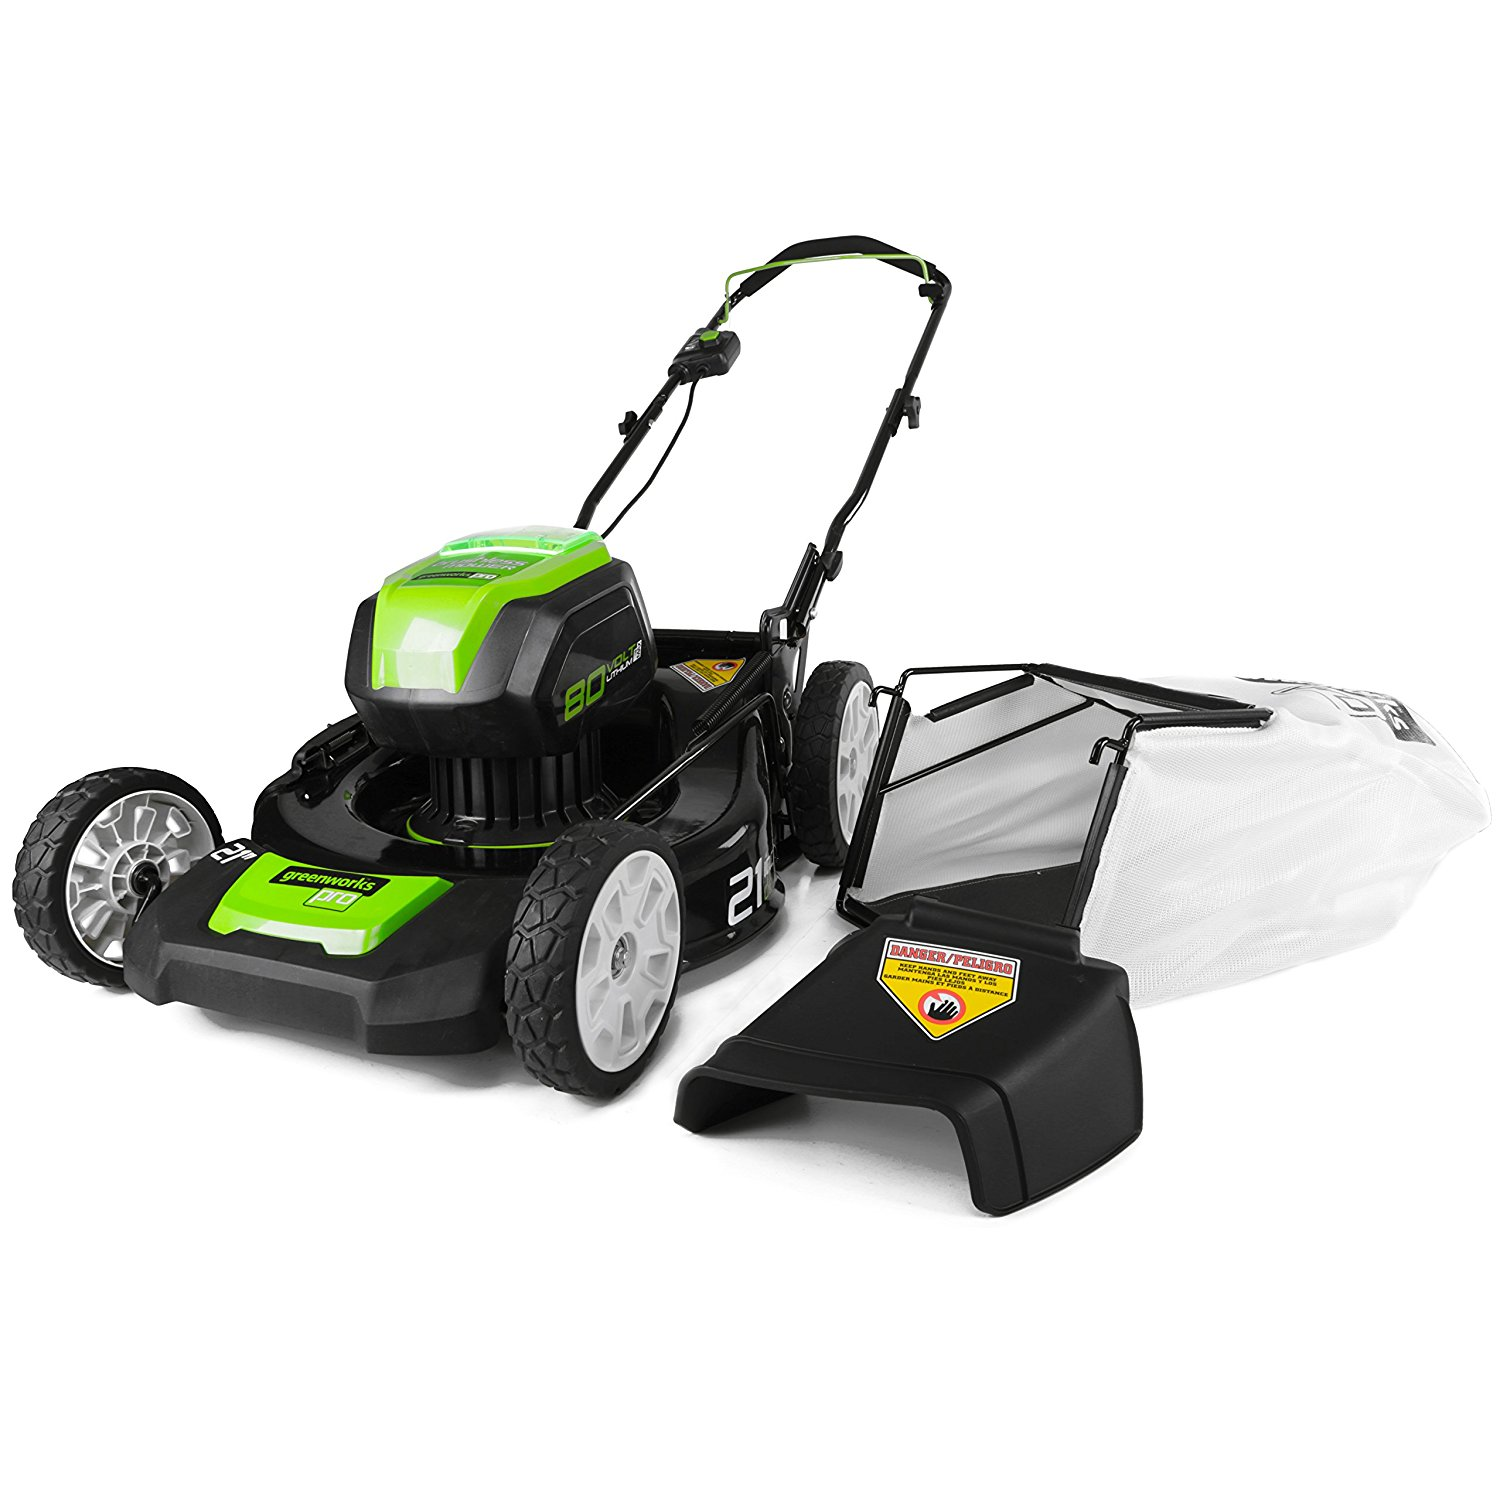 GreenWorks GLM801600 80V 21-Inch Cordless Lawn Mower, Battery and Charger Not Included